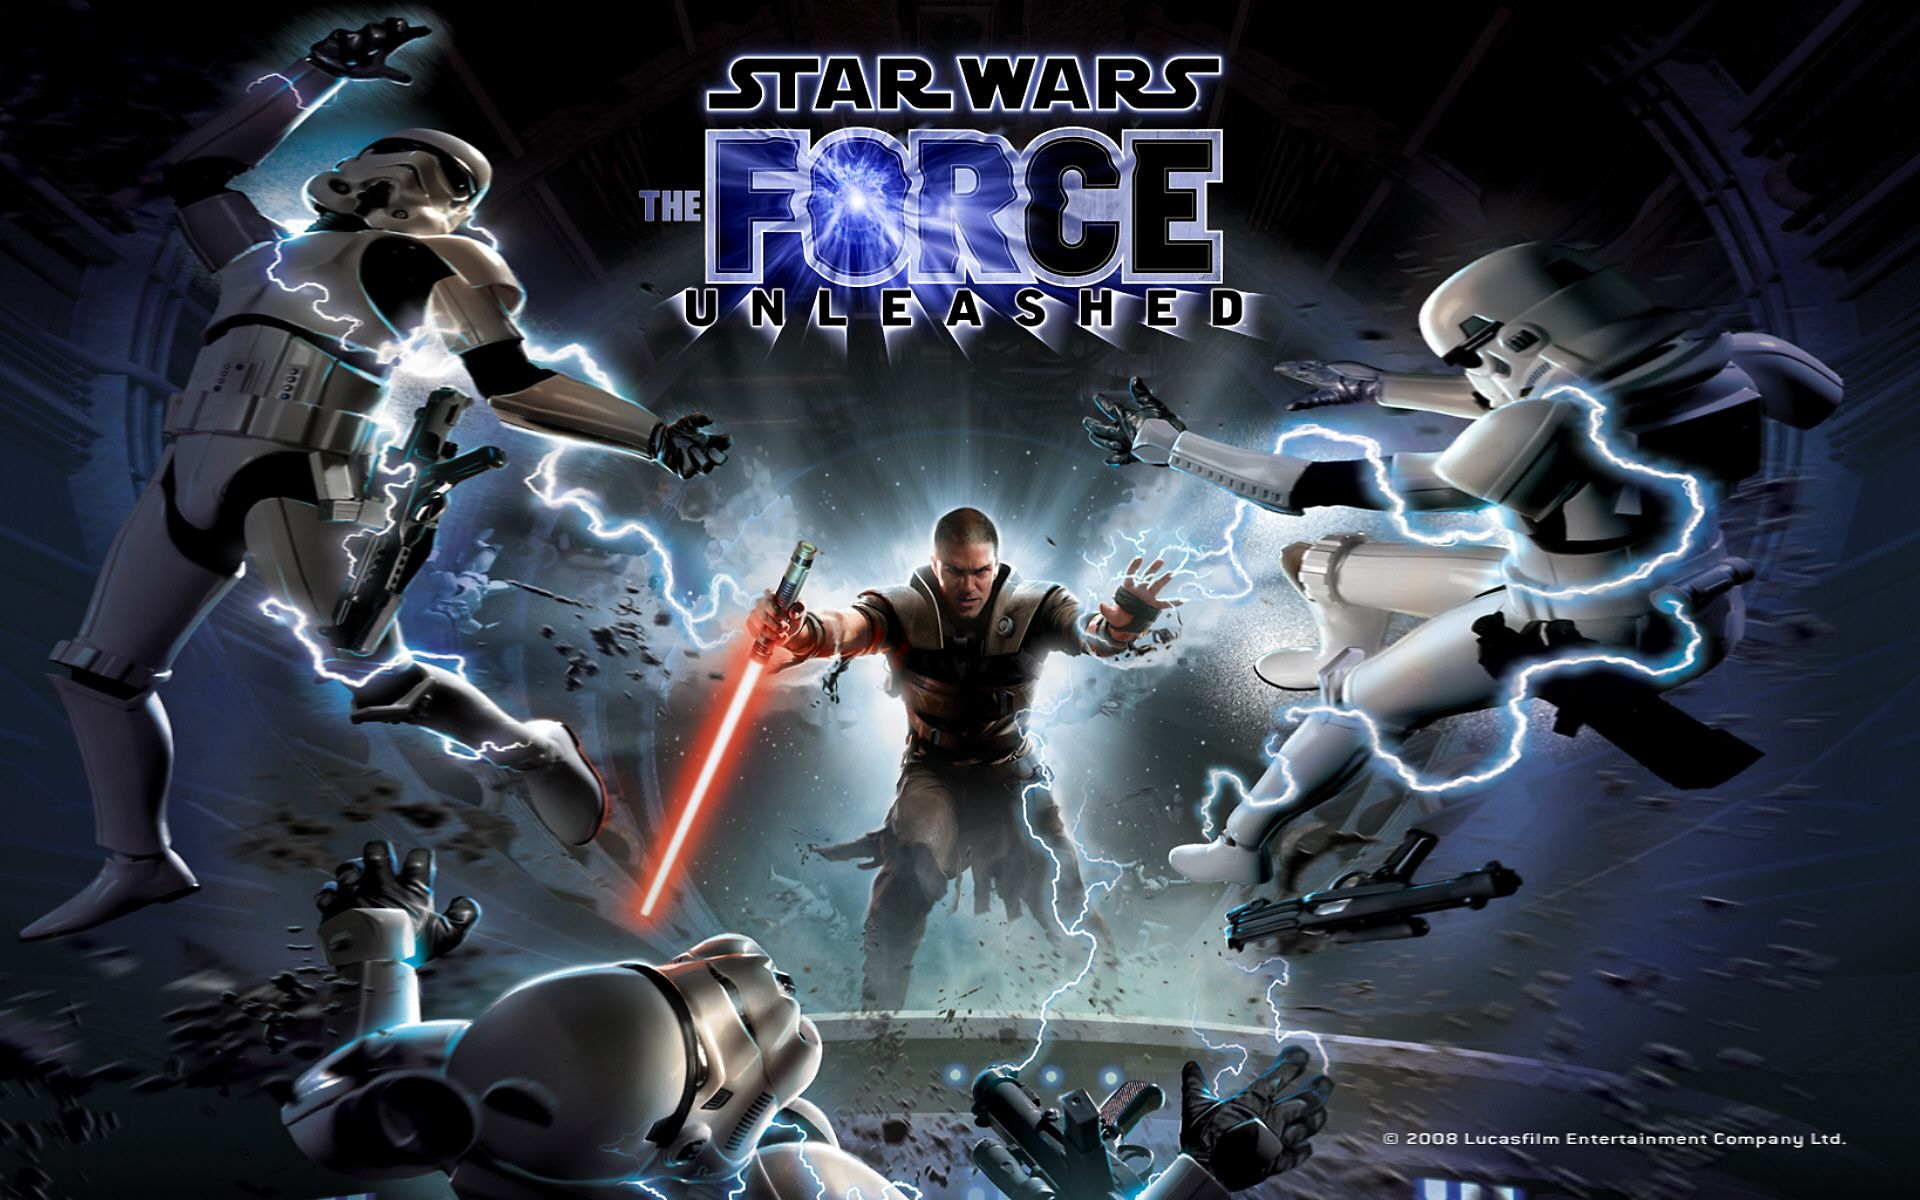 Star Wars The Force Unleashed, A Ten Year Reunion